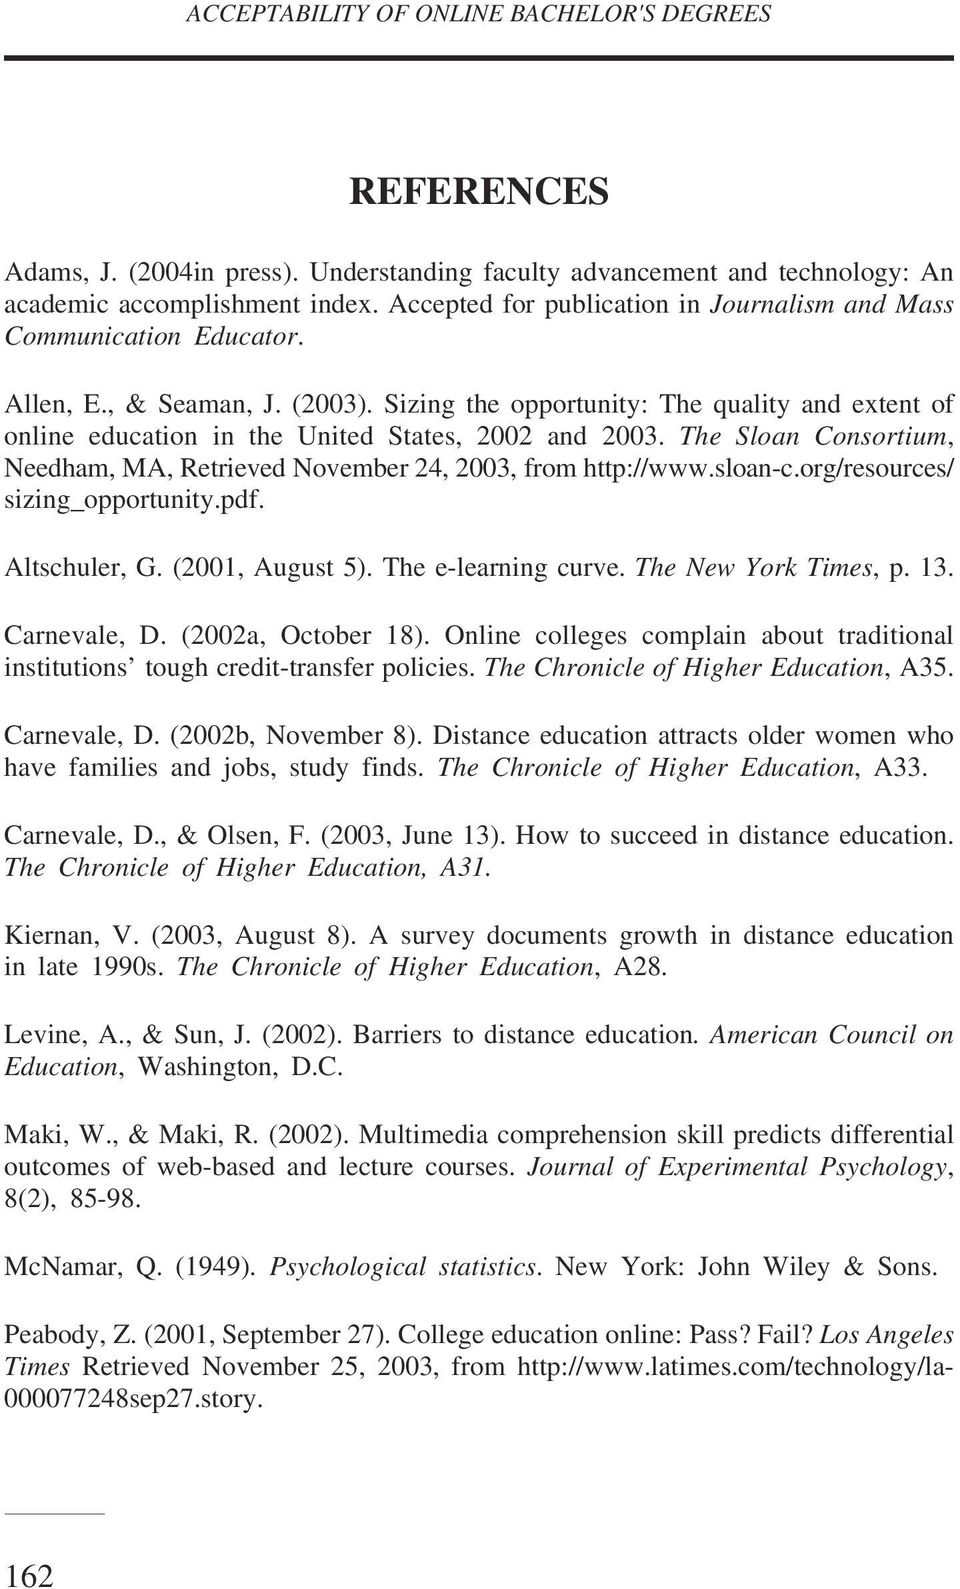 Sizing the opportunity: The quality and extent of online education in the United States, 2002 and 2003. The Sloan Consortium, Needham, MA, Retrieved November 24, 2003, from http://www.sloan-c.